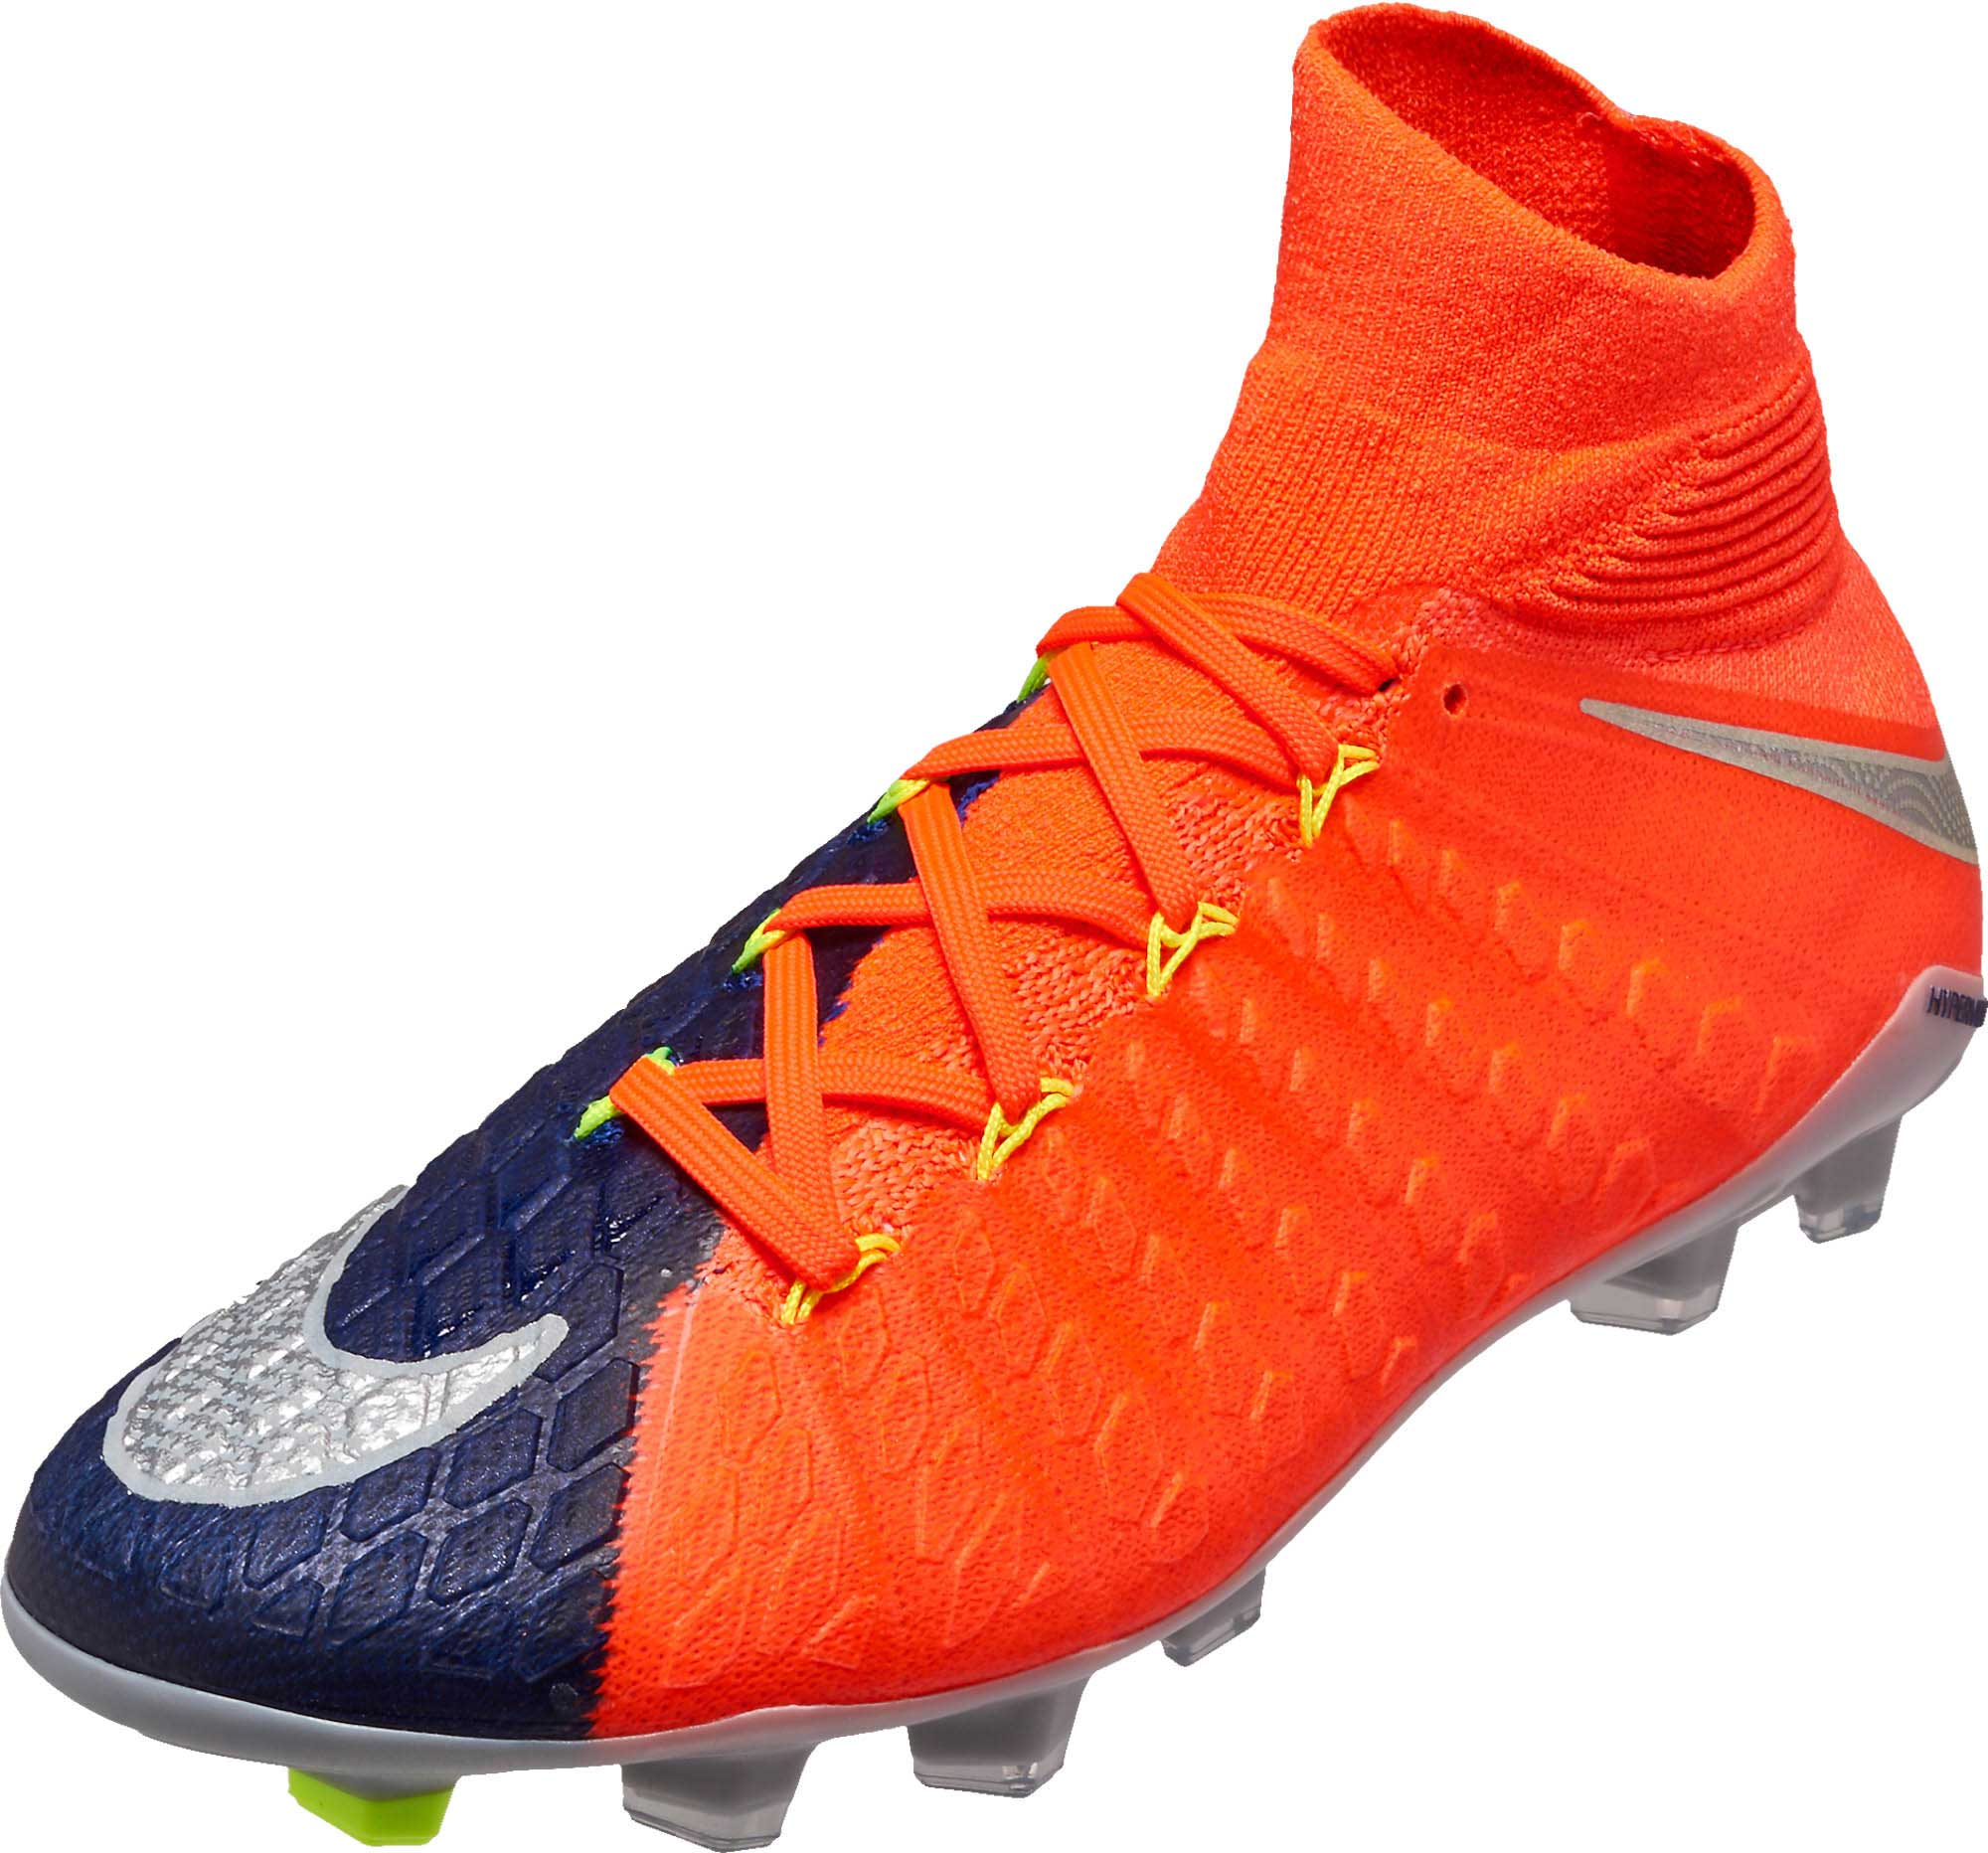 buy popular fa7ef 7442c Nike Kids Hypervenom Phantom III DF FG – Deep Royal/Chrome